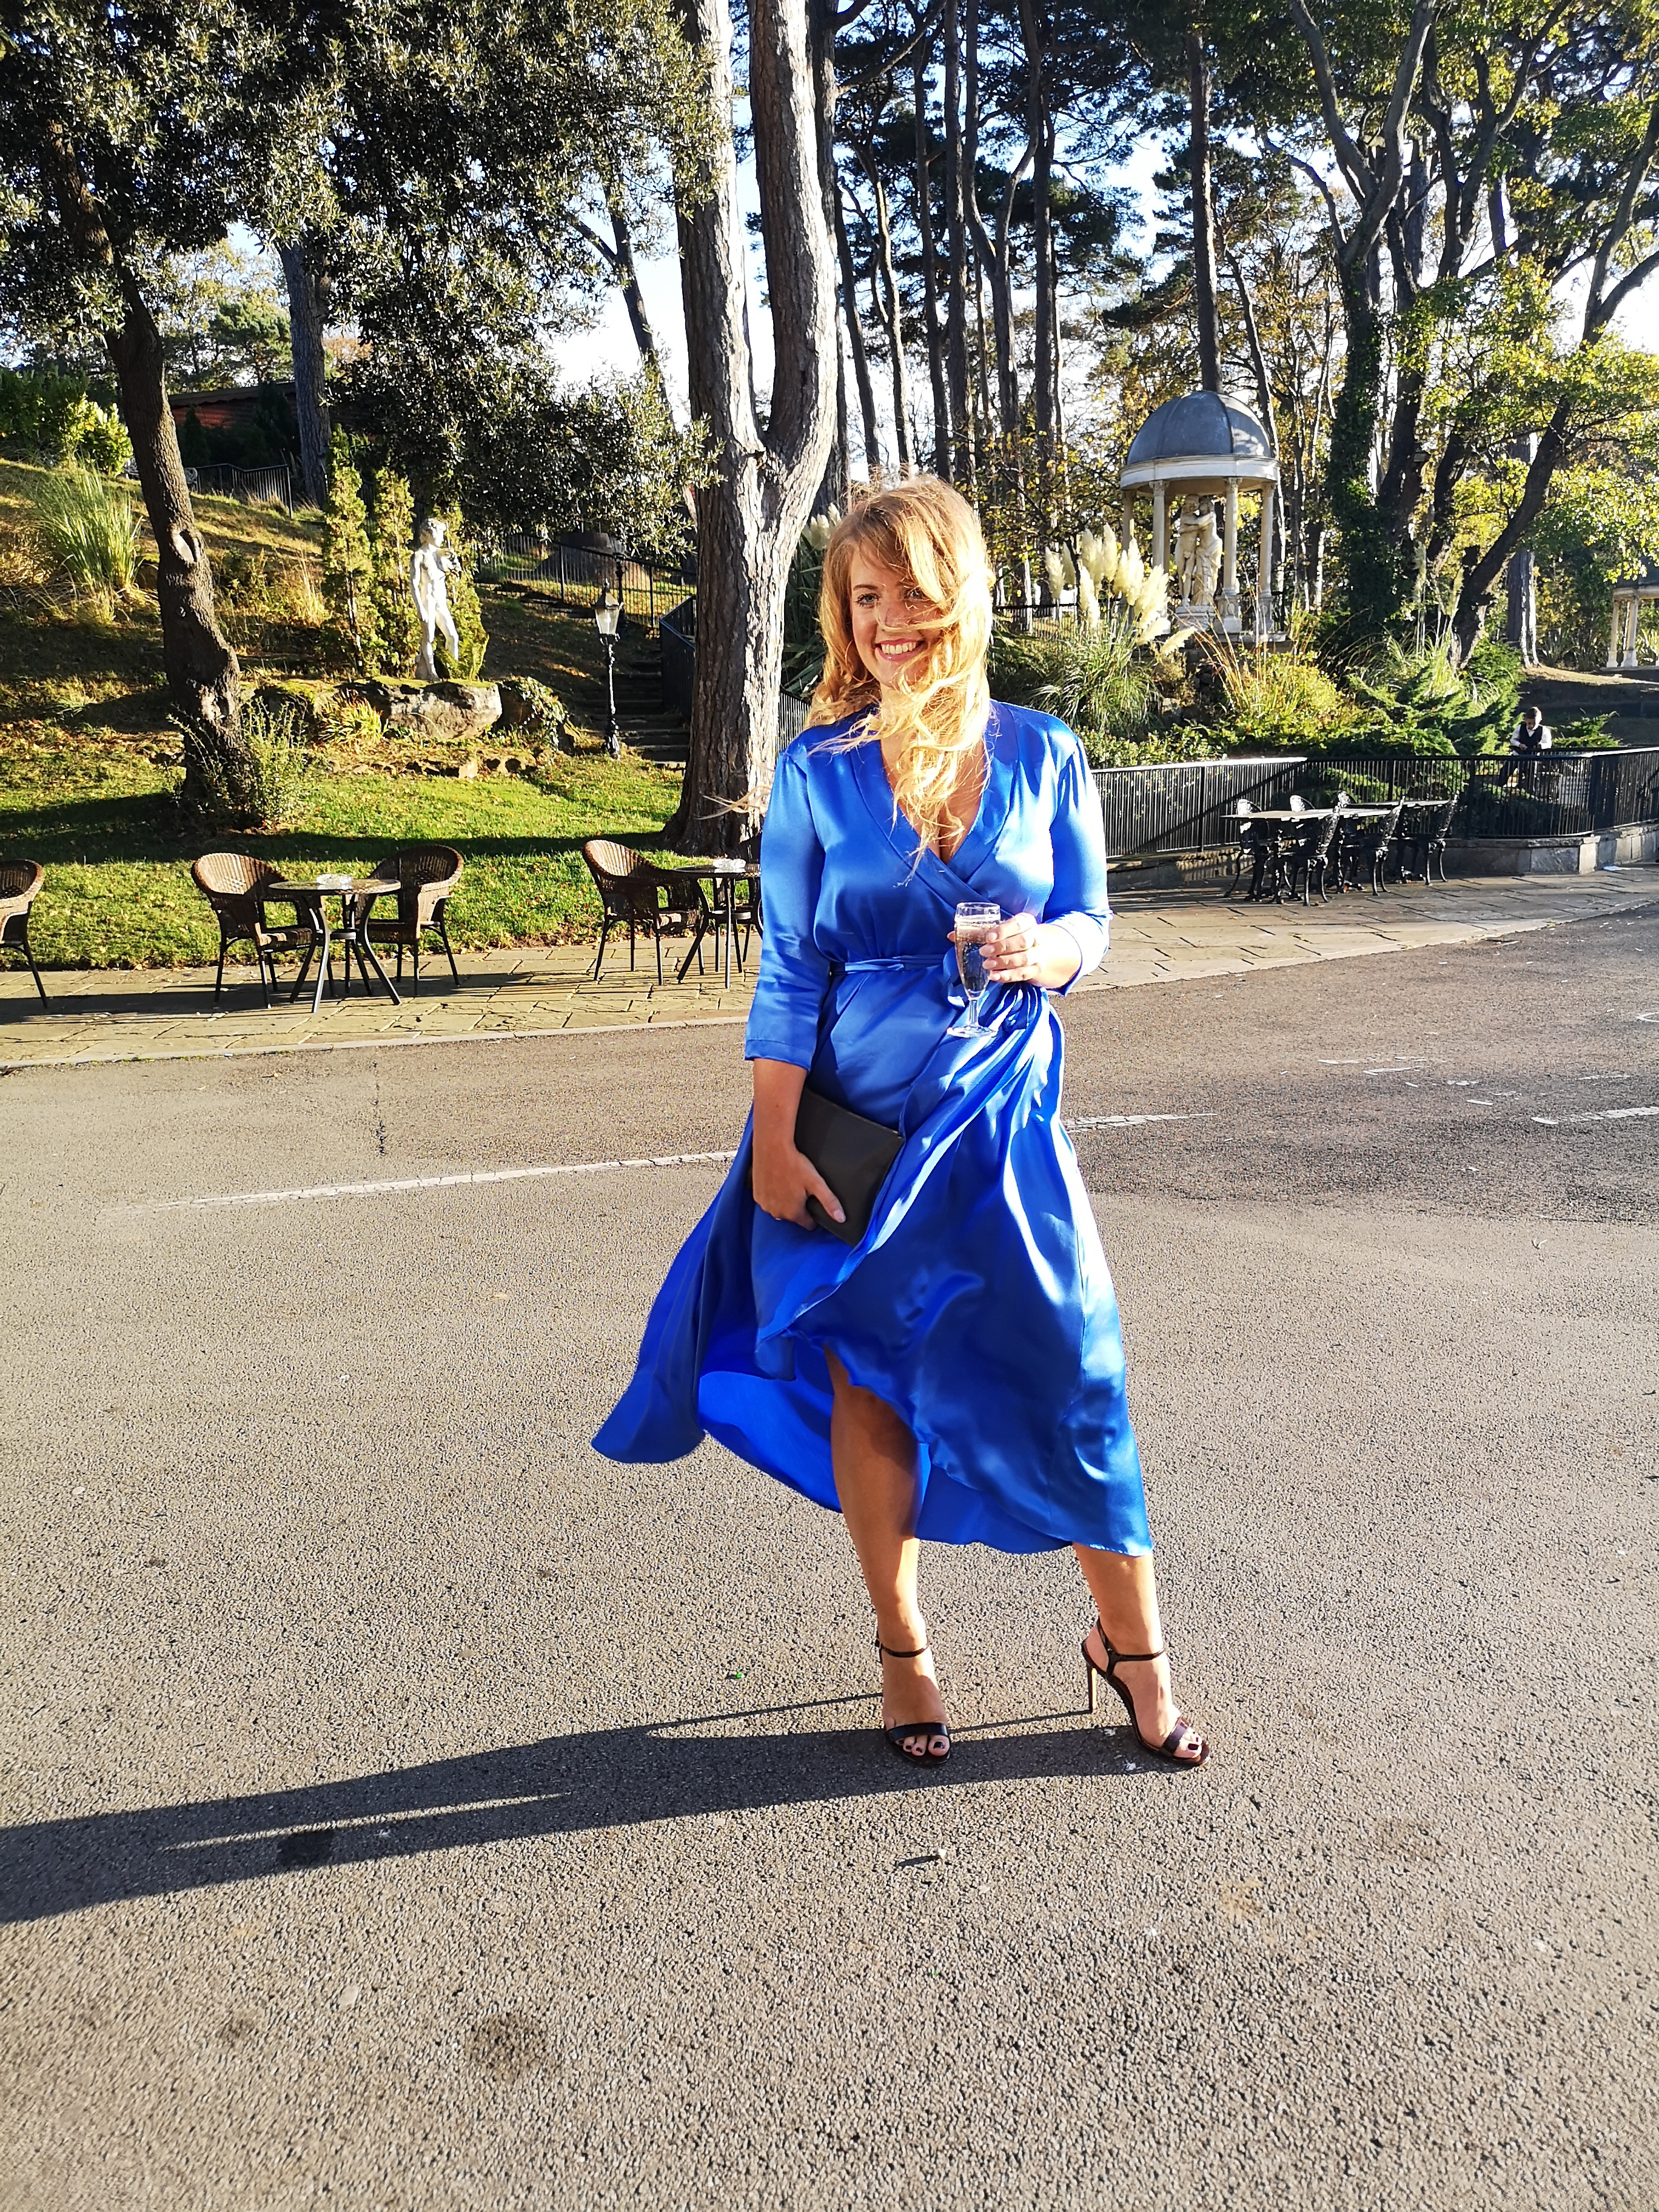 lisa blue dress in sun